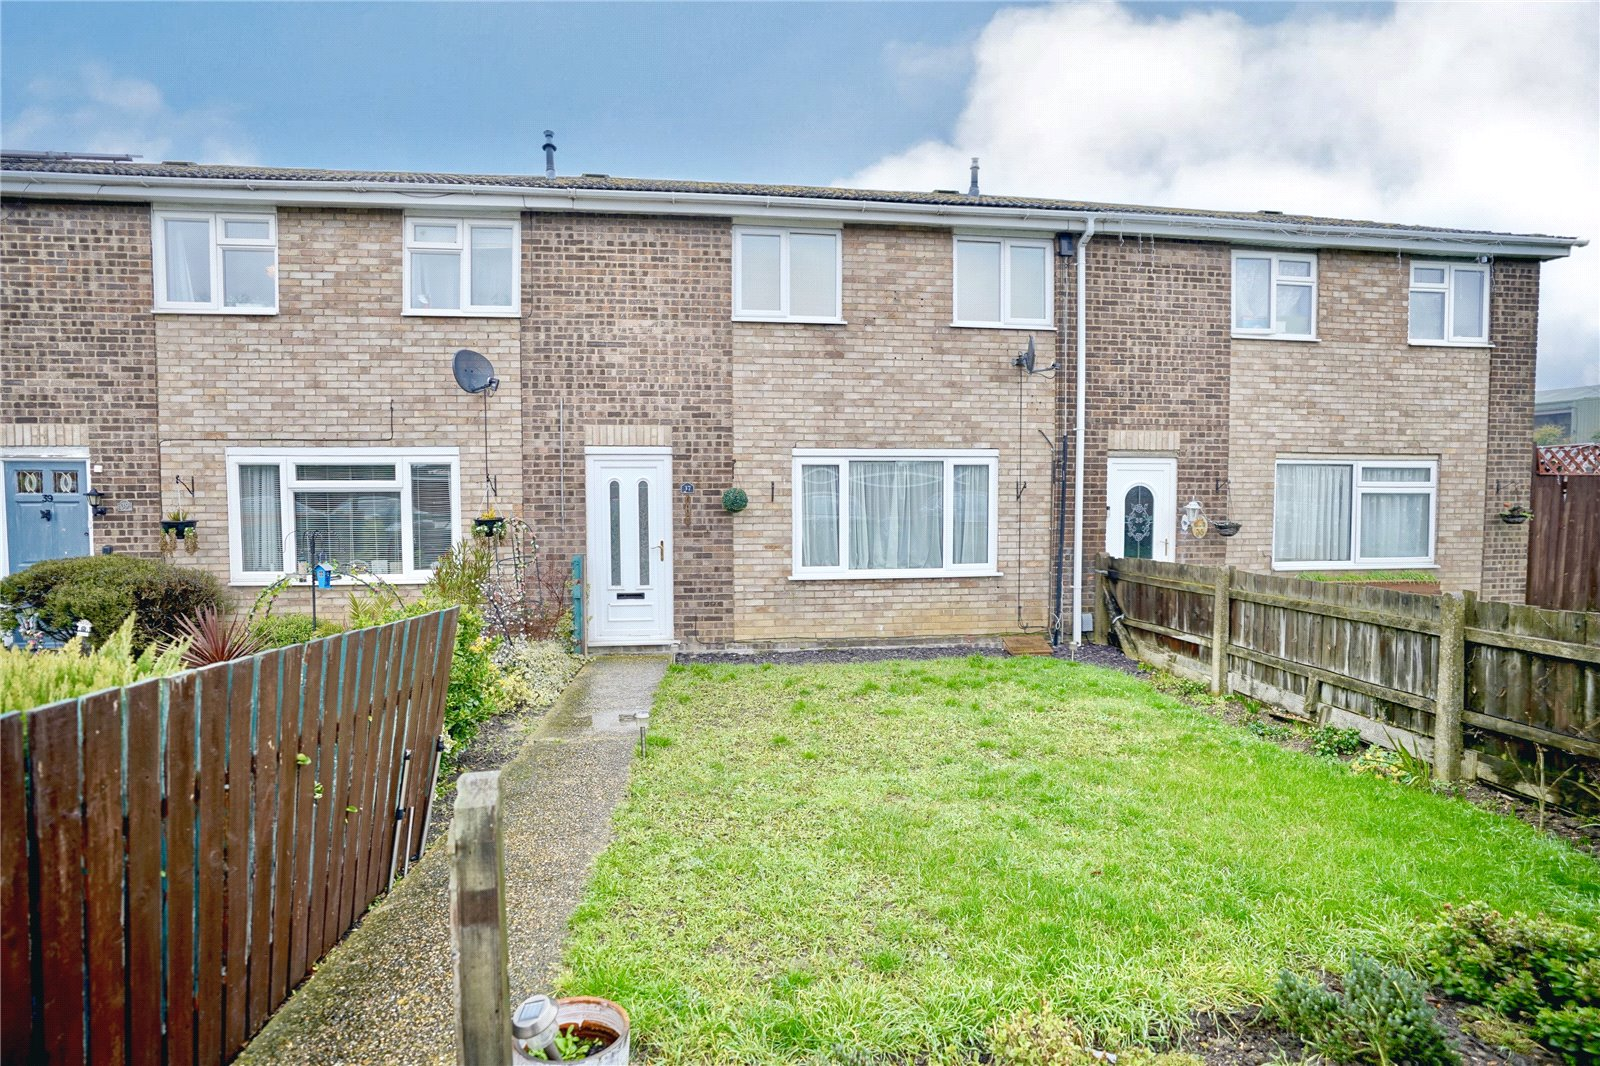 3 bed house for sale in Eynesbury, Hampden Way, PE19 2JH, PE19